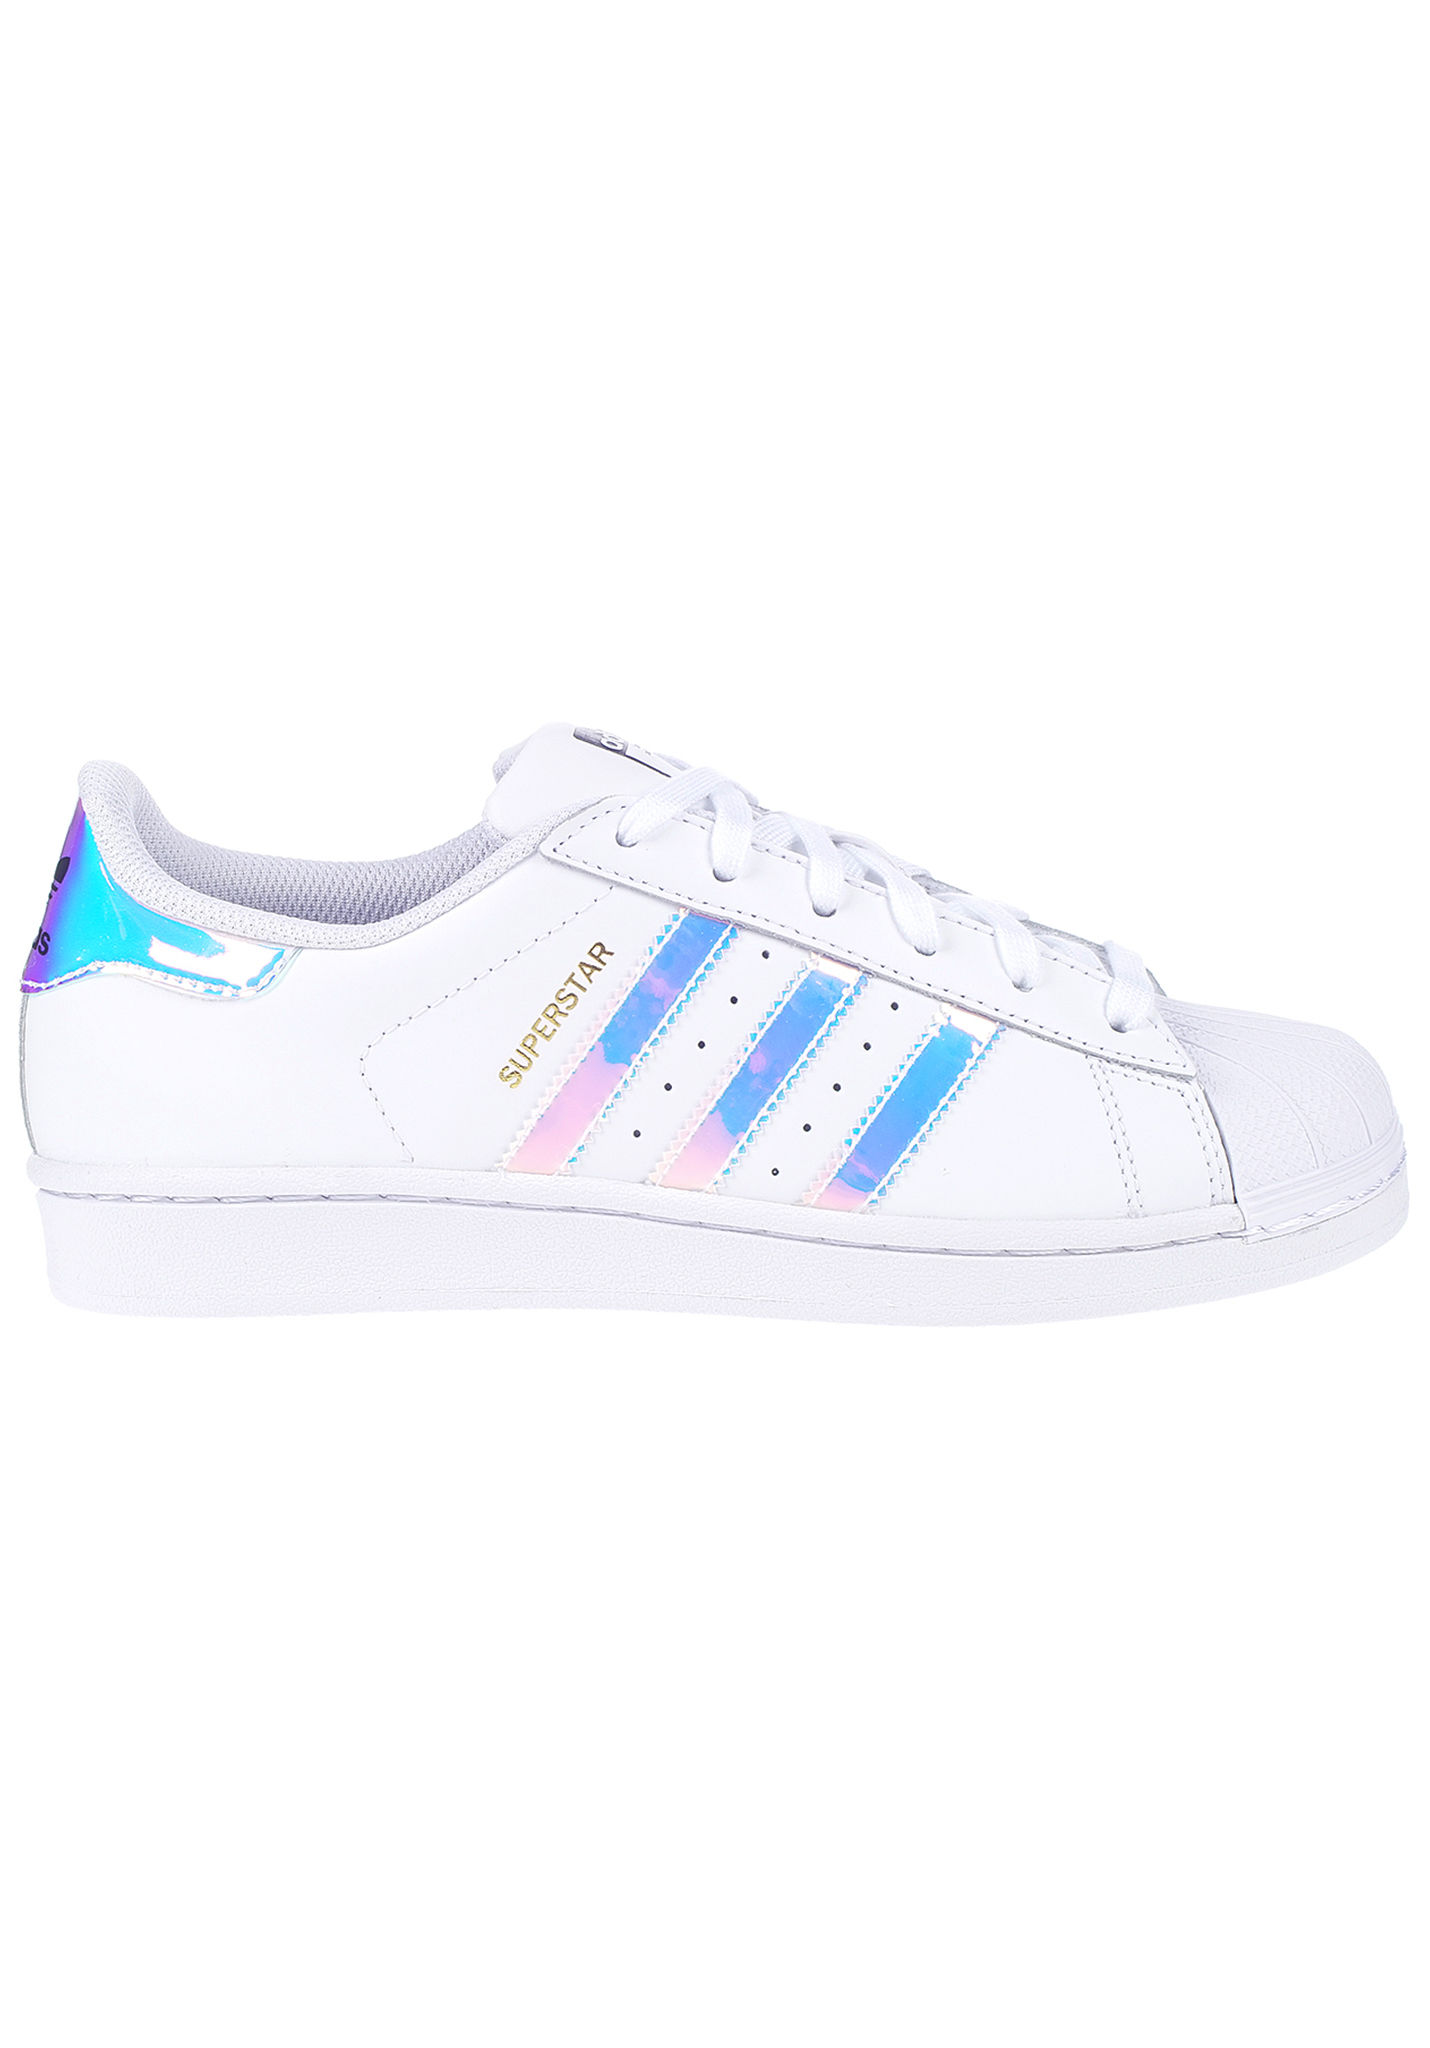 plus de photos 62b83 b360f Adidas Superstar Irisé Femme ChaussureAdidasonlineoutlet.fr